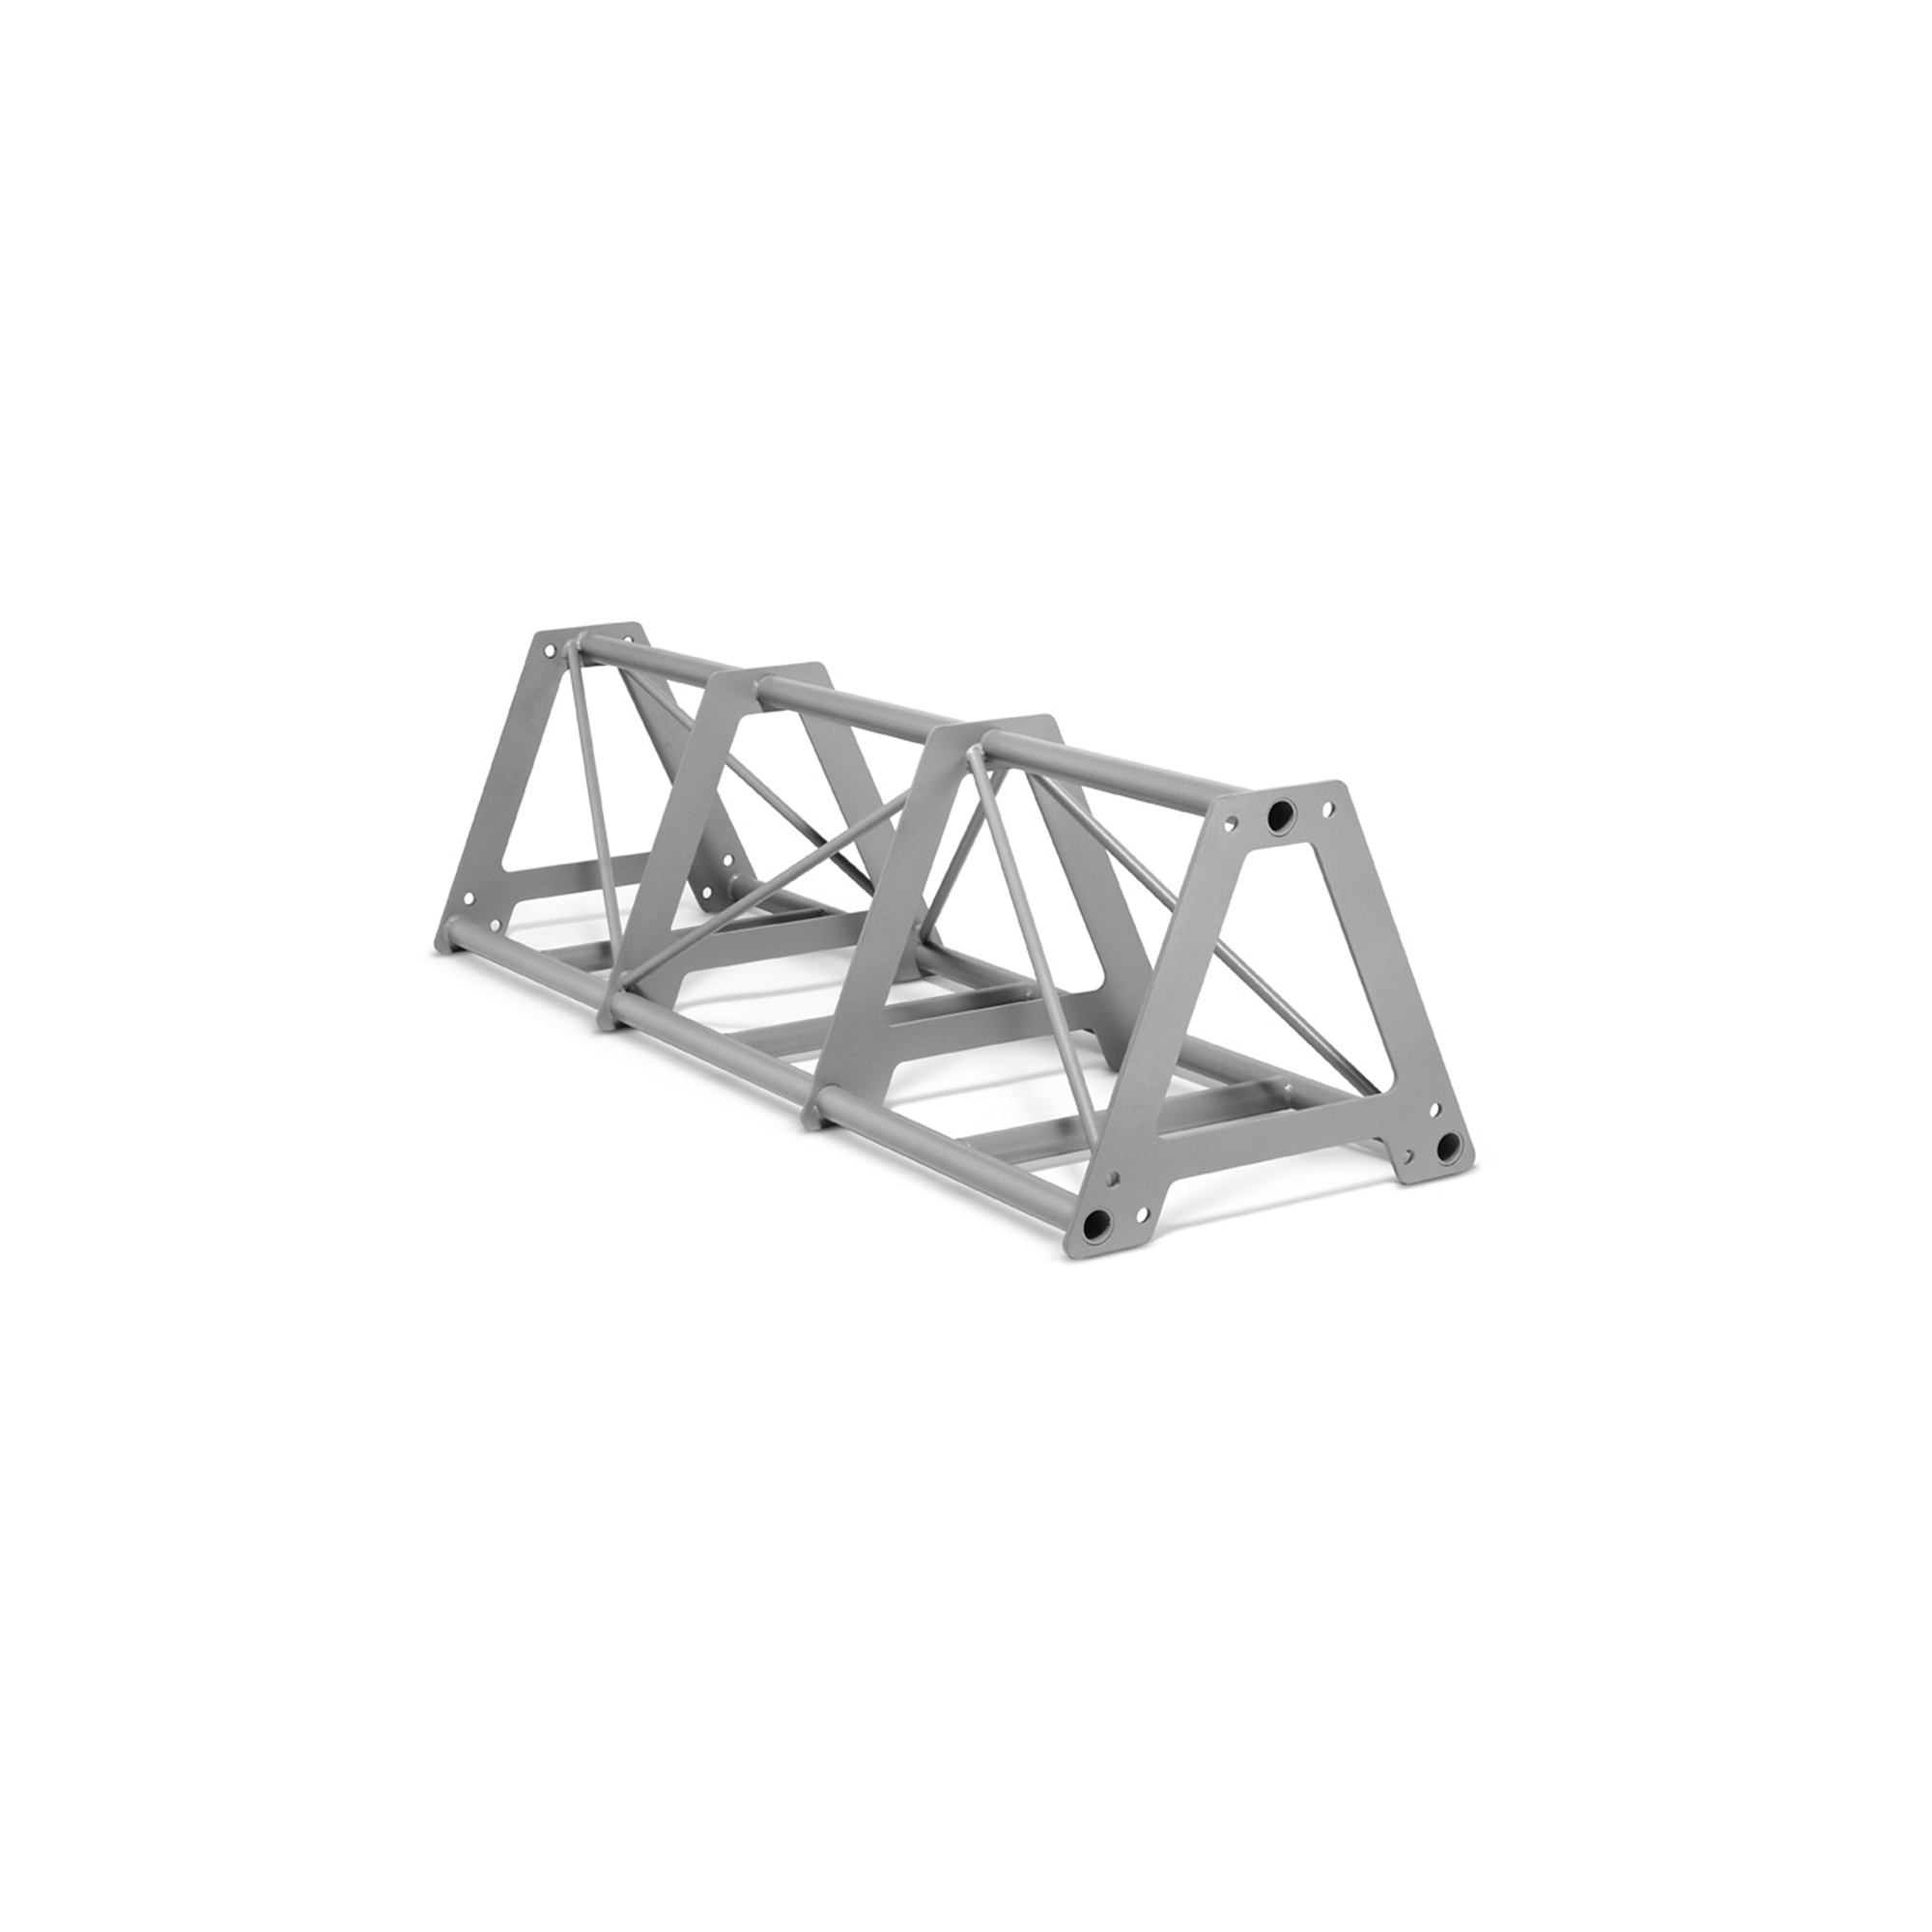 Trx 174 S Frame Monkey Bars Buy Online At Physical Company